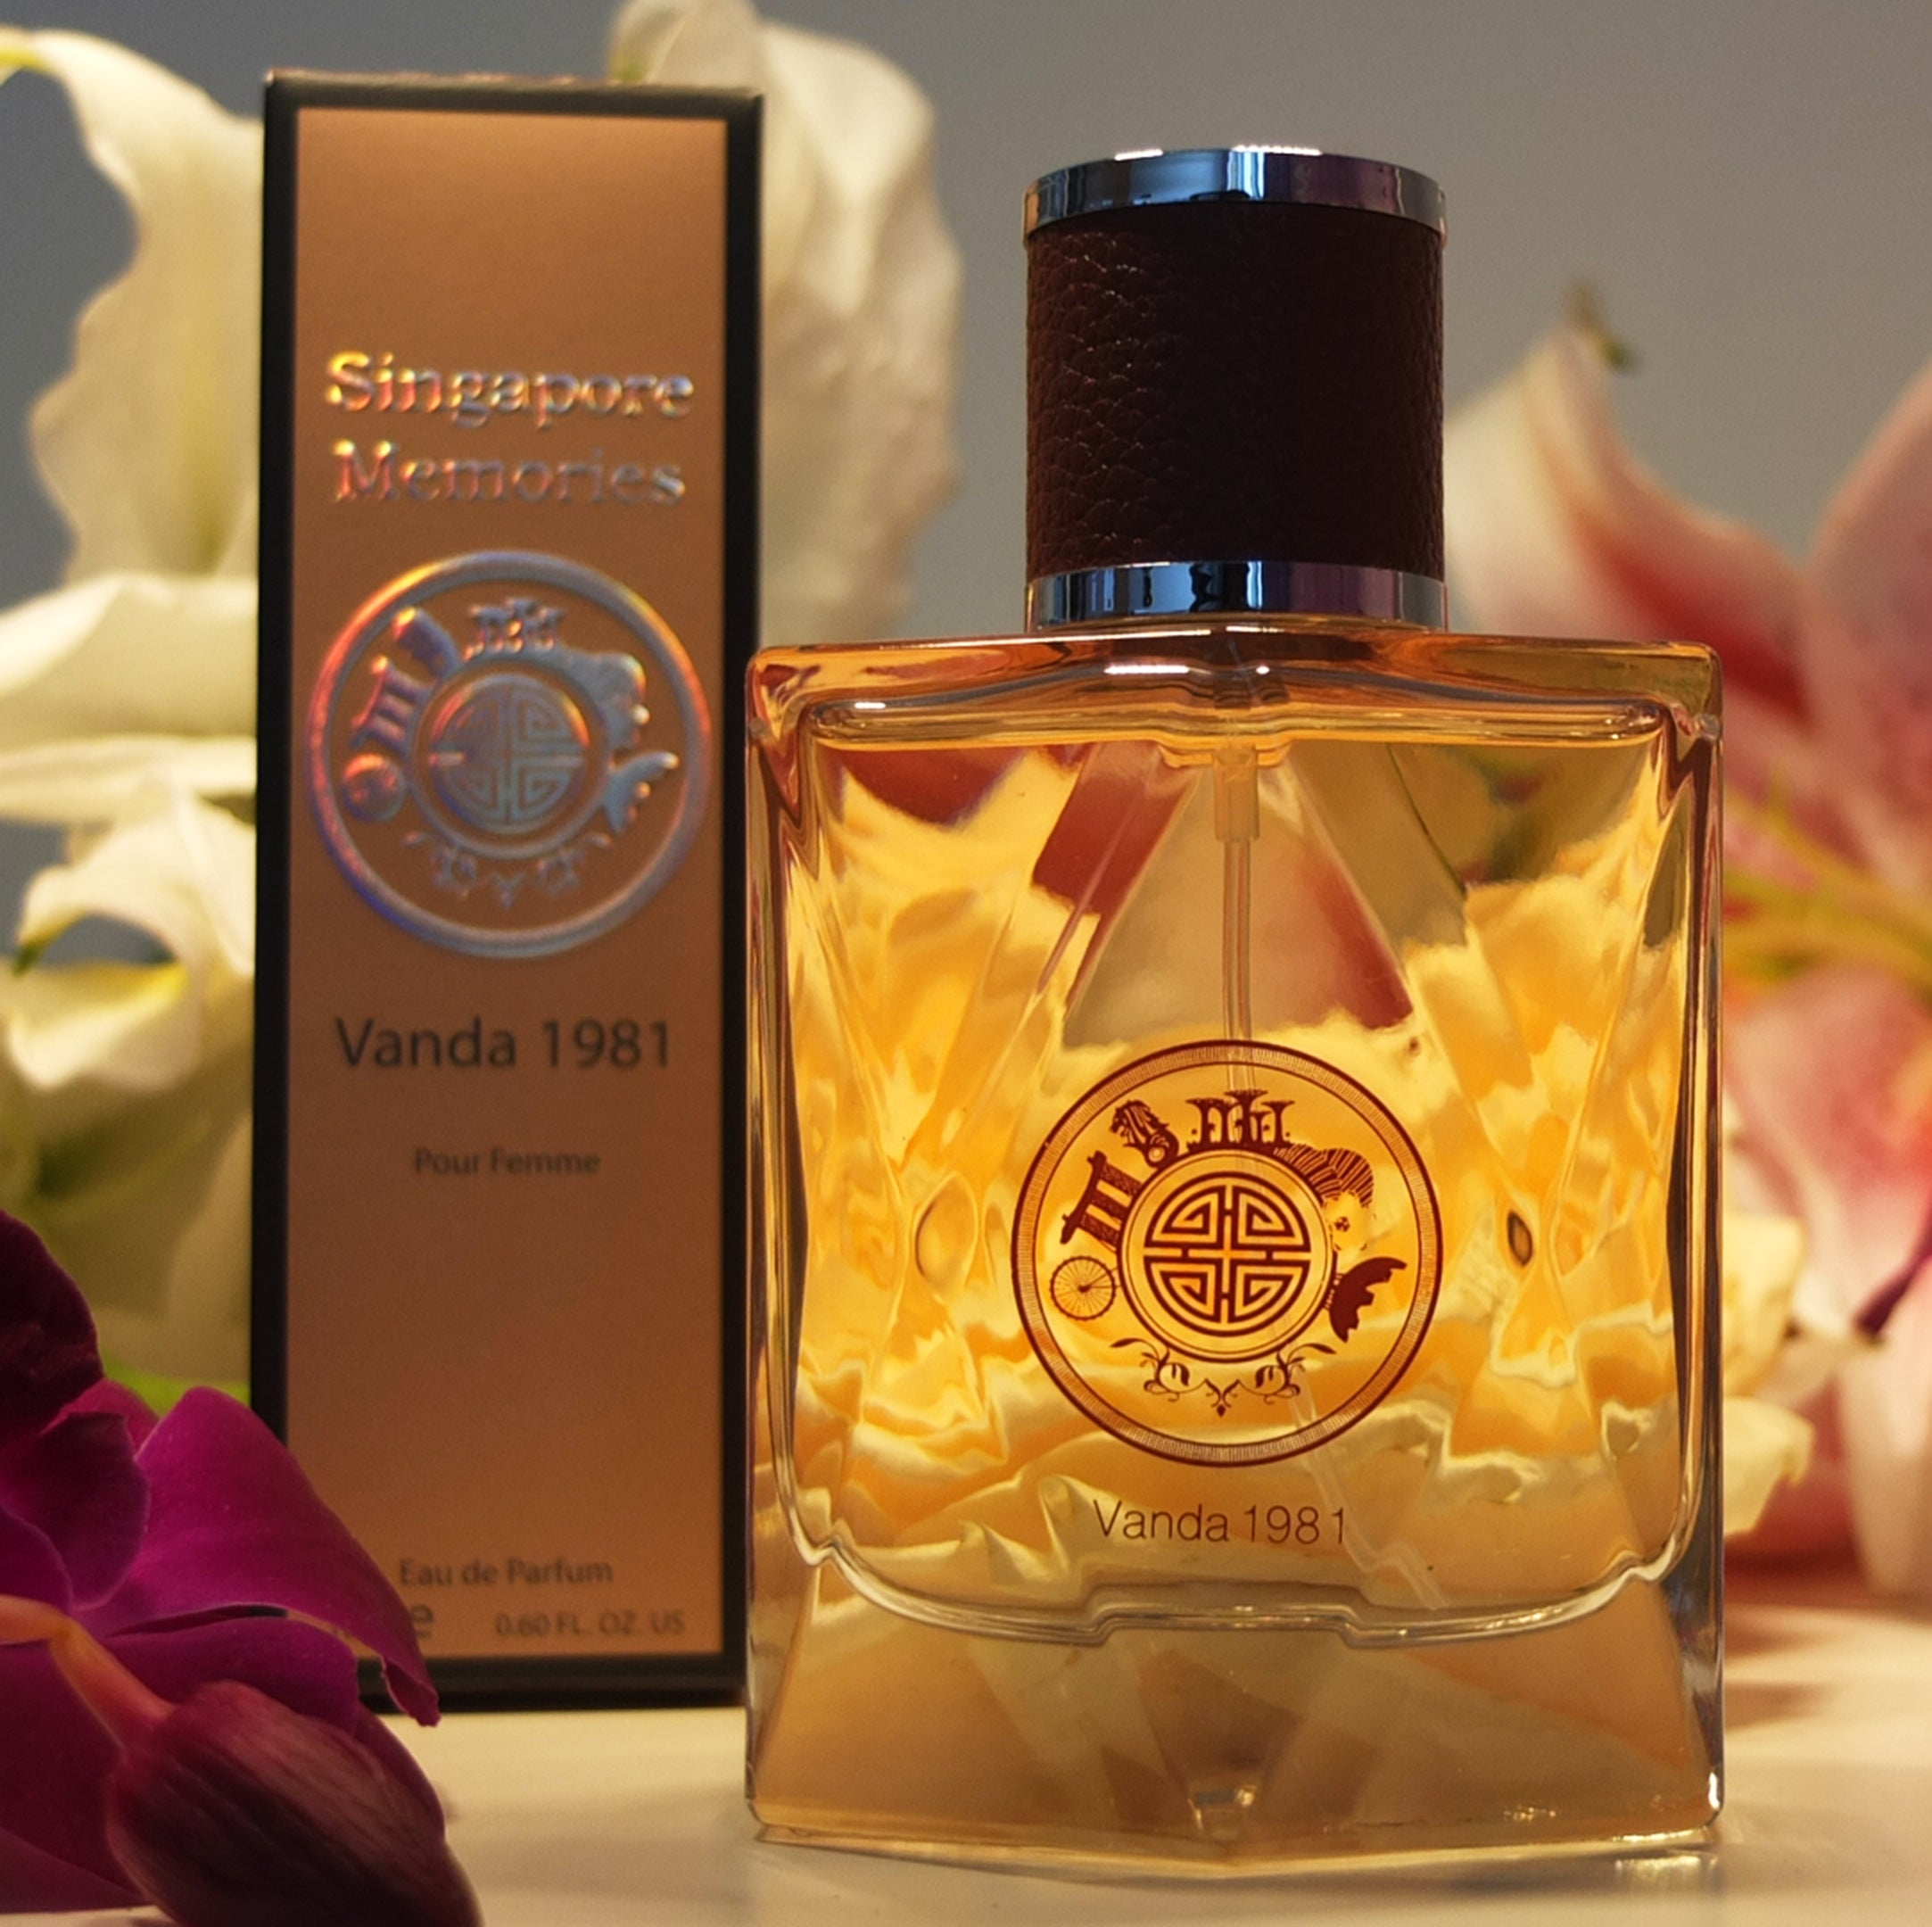 Perfume Singapore Collections Online : Singapore Memories , Vanda 1981 , Orchid smell of Vanda Miss Joaquim